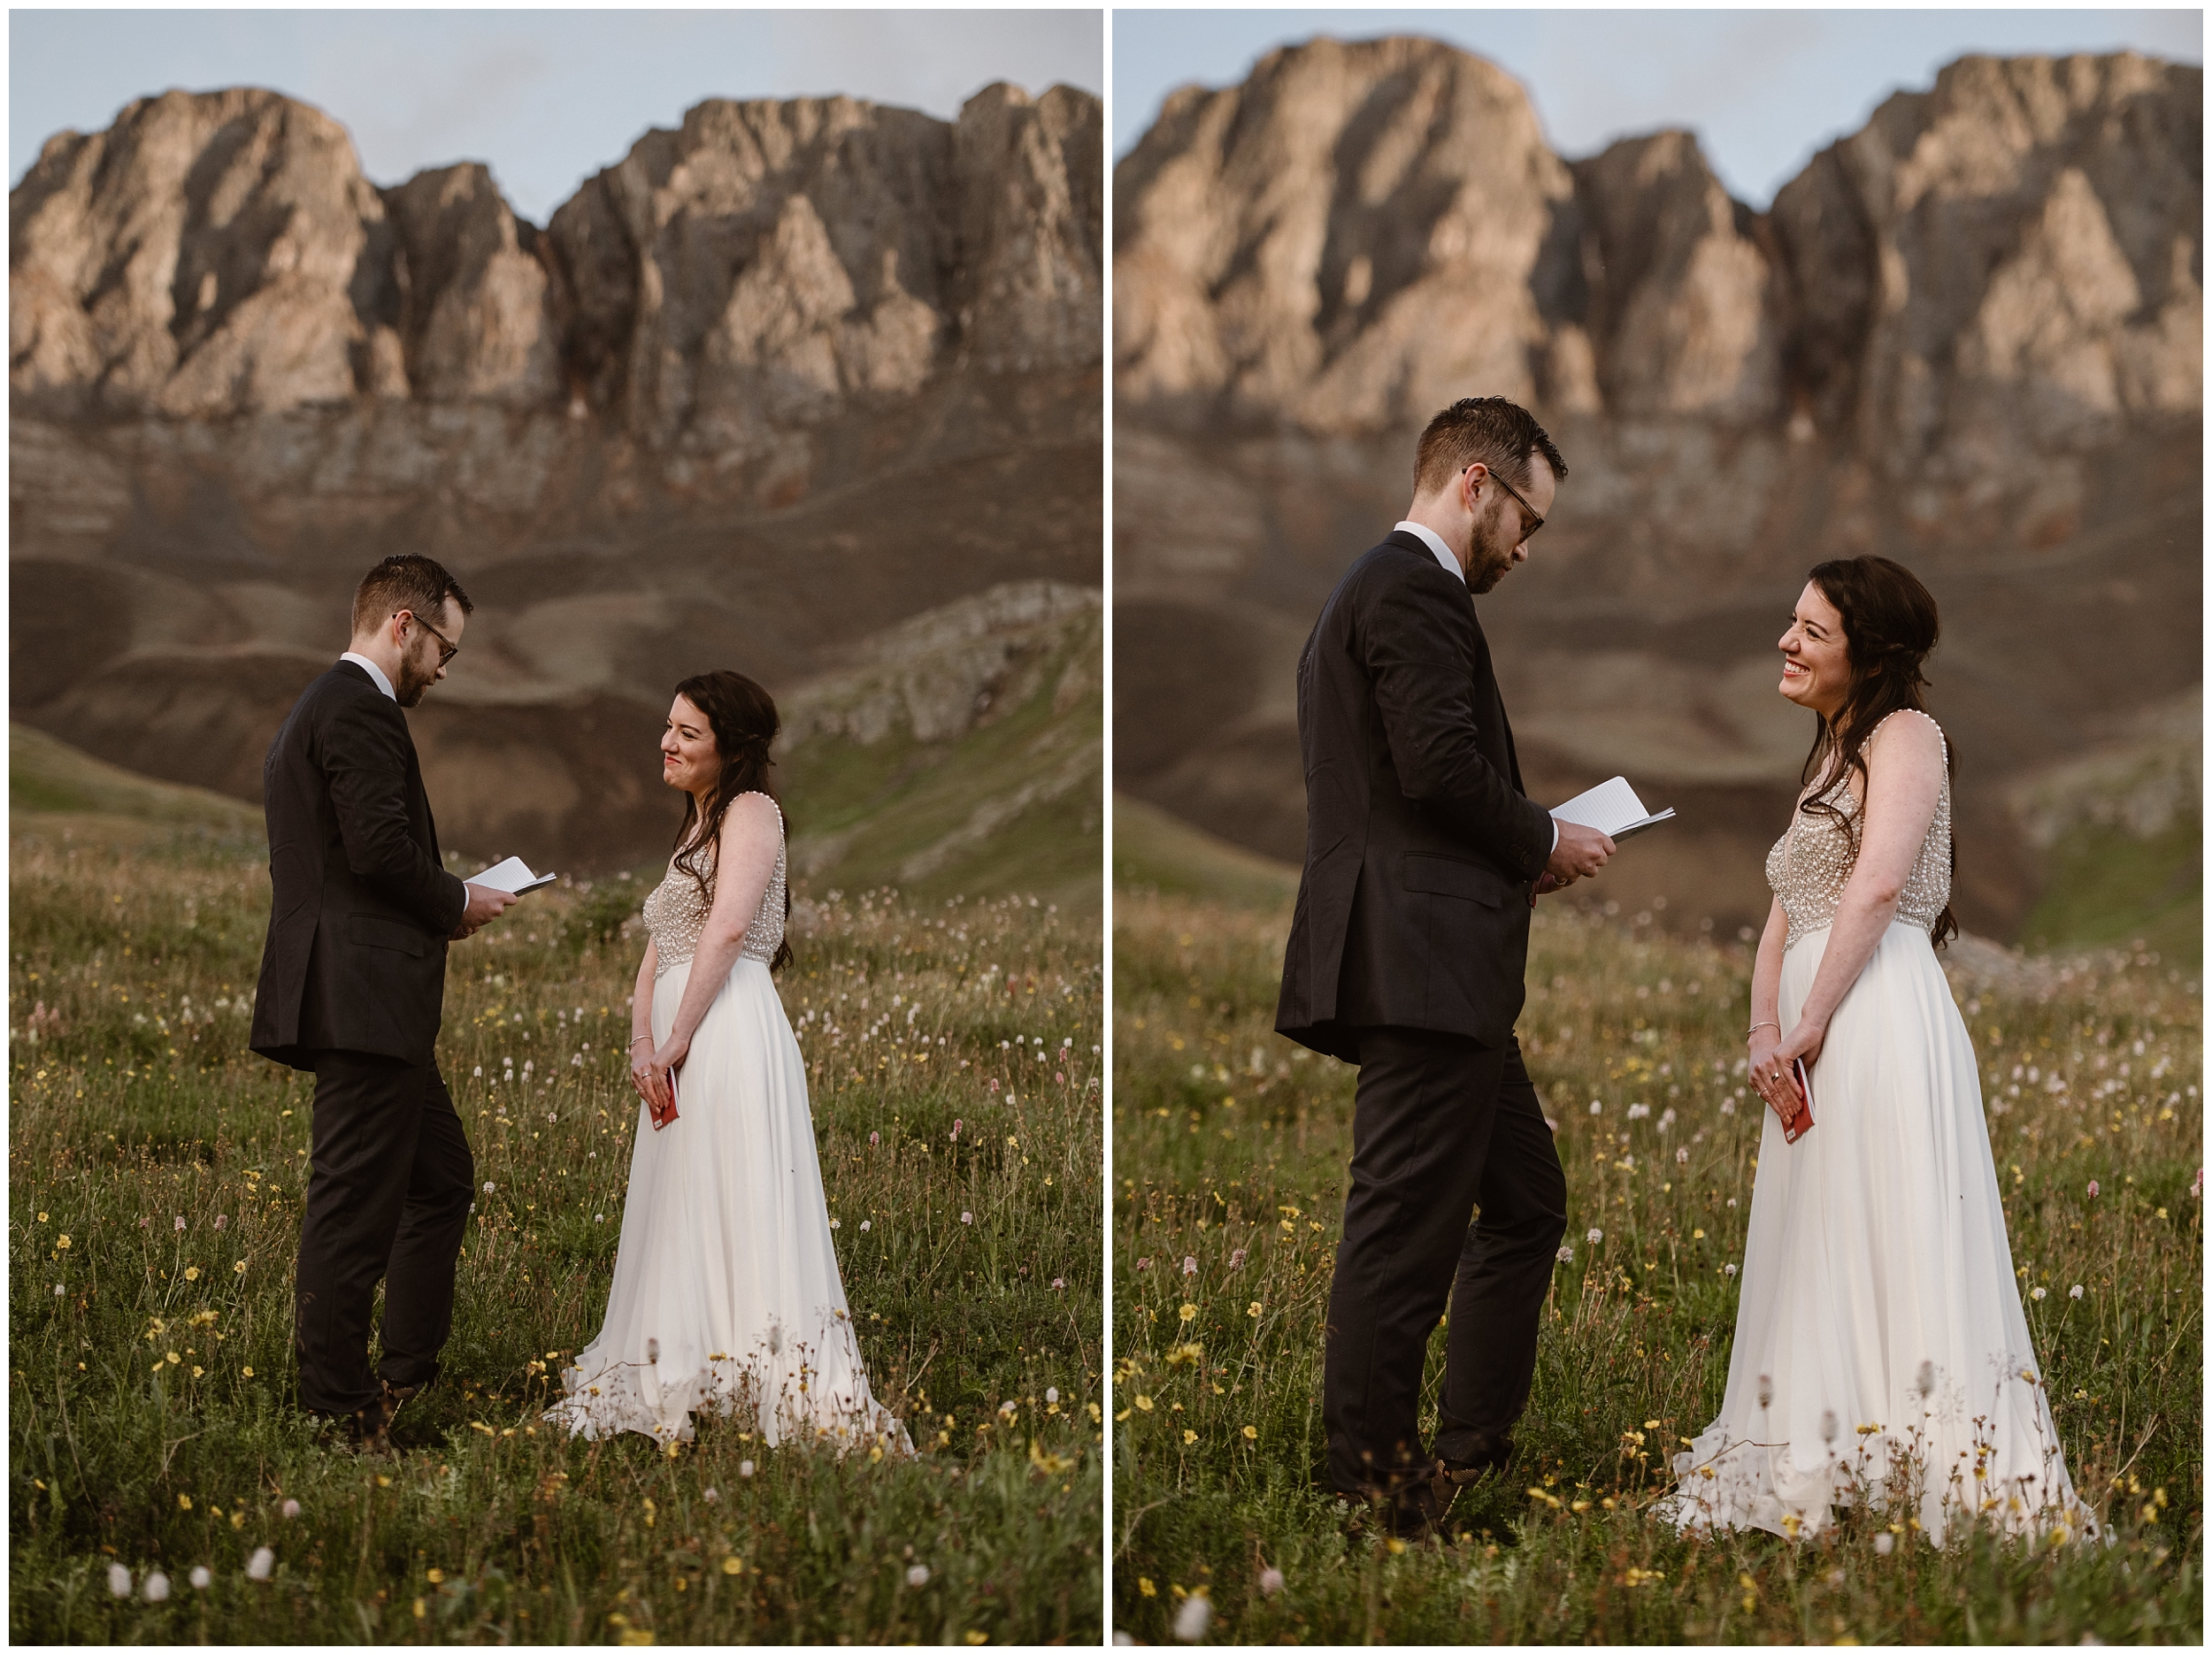 These side-by-side elopement photos show Katie and Logan exchanging their vows during their elopement ceremony as a part of their Colorado mountain wedding. In the photo on the left, Katie smirks at Logan as he read his vows to her from a notebook in his hands. in the photo to the right, Katie gives Logan a giant smile as he continues to read his vows.